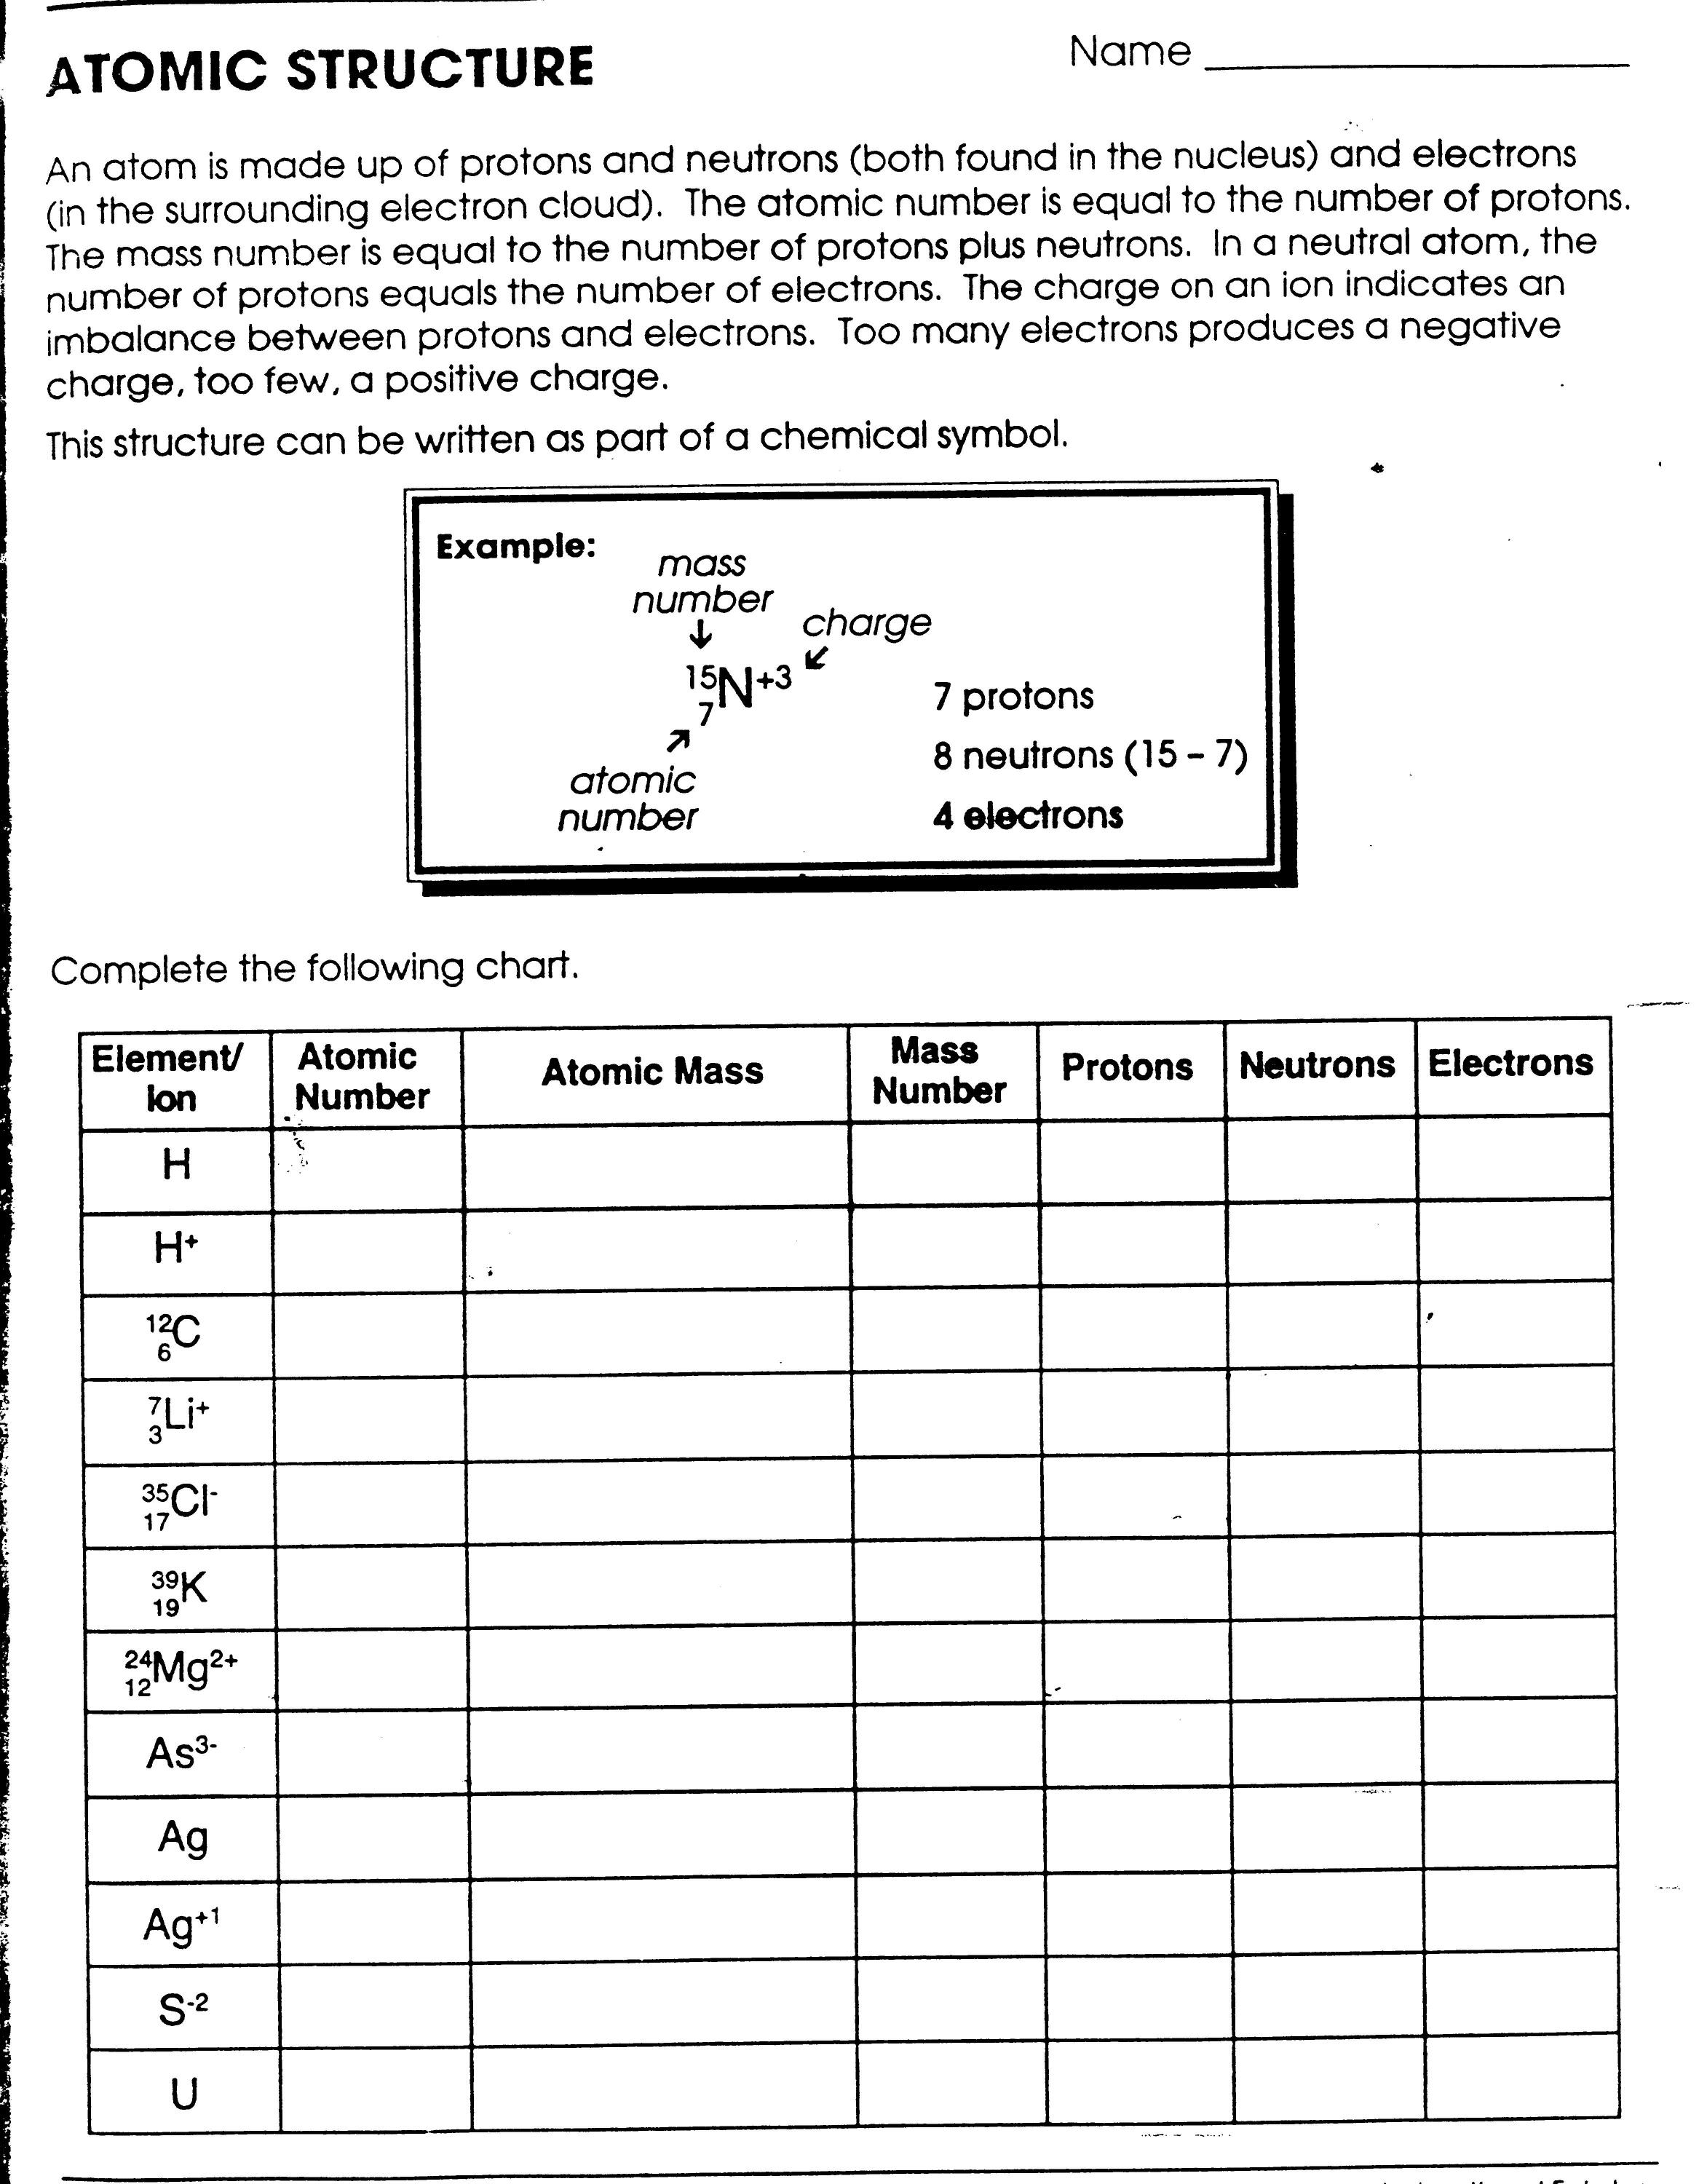 Structure Of An Atom Worksheet